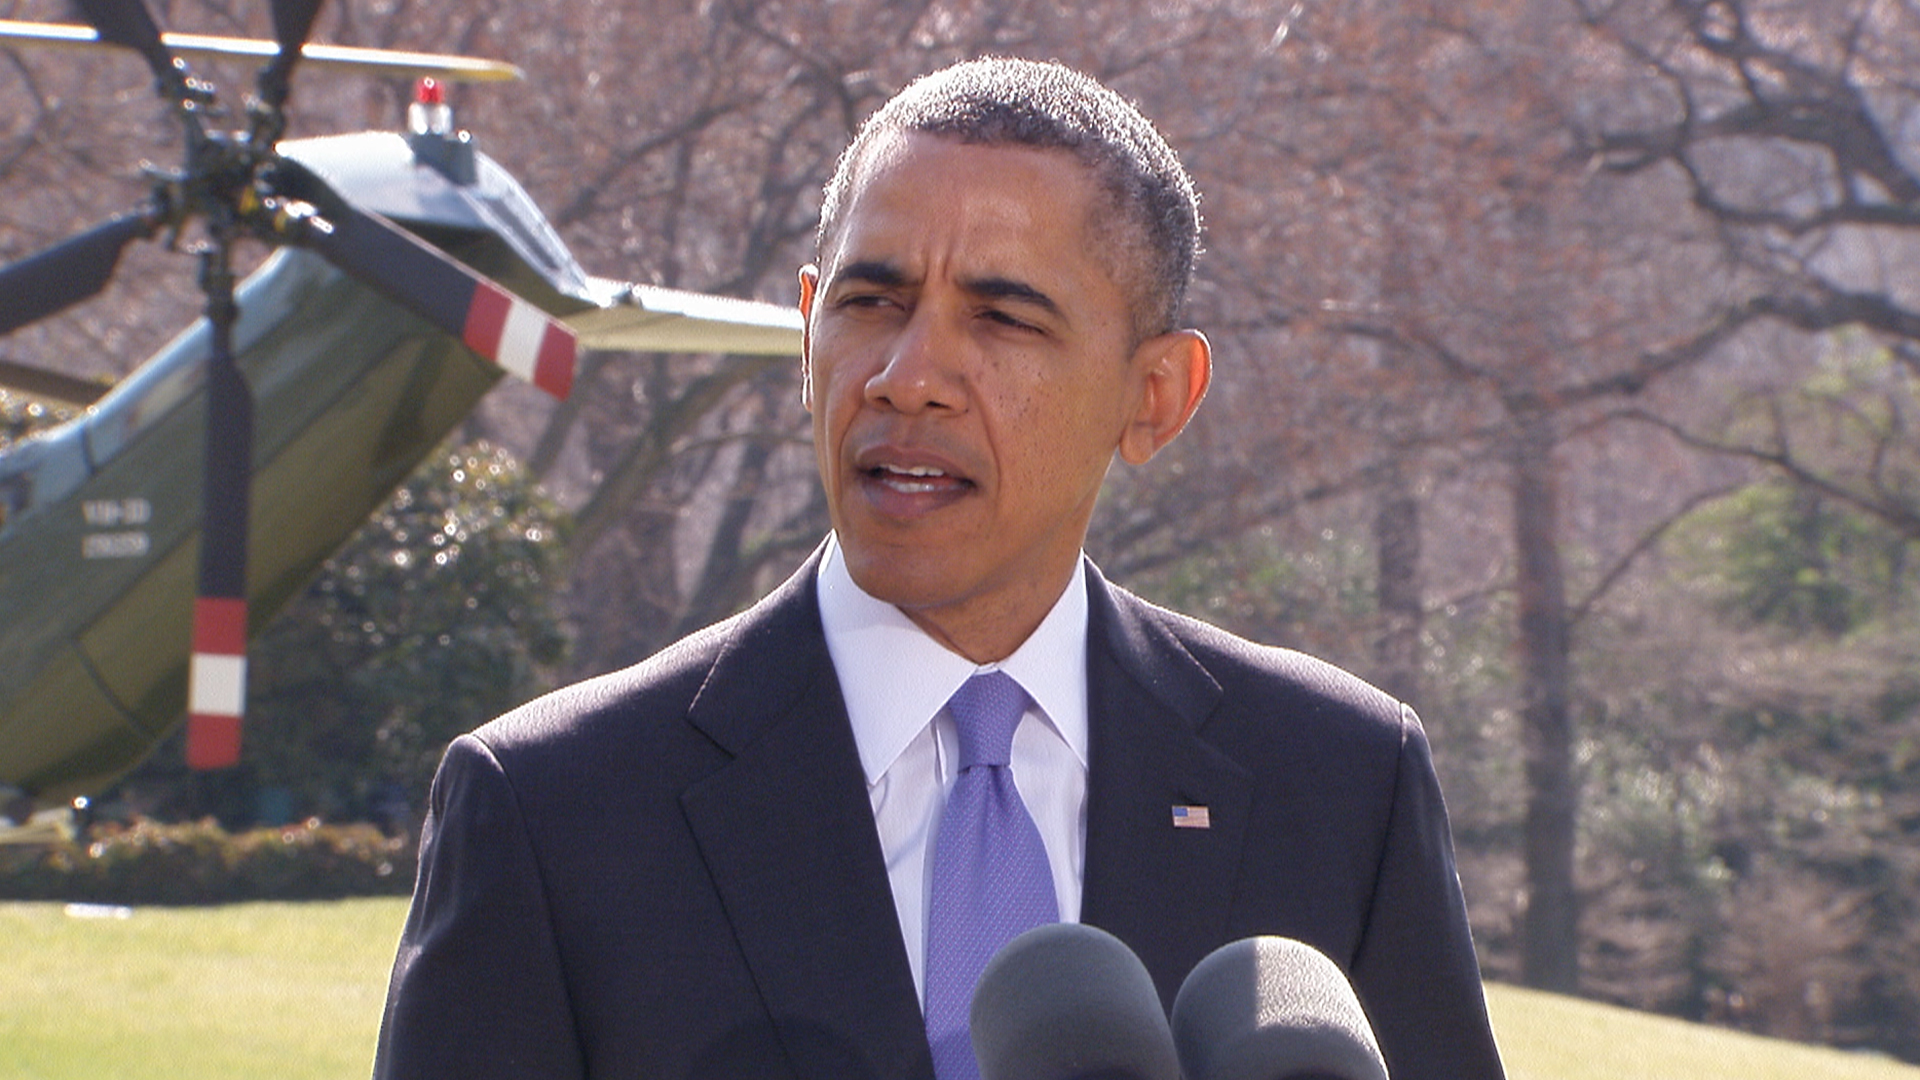 Obama: U.S. Could Target 'Key Sectors of the Russian Economy'